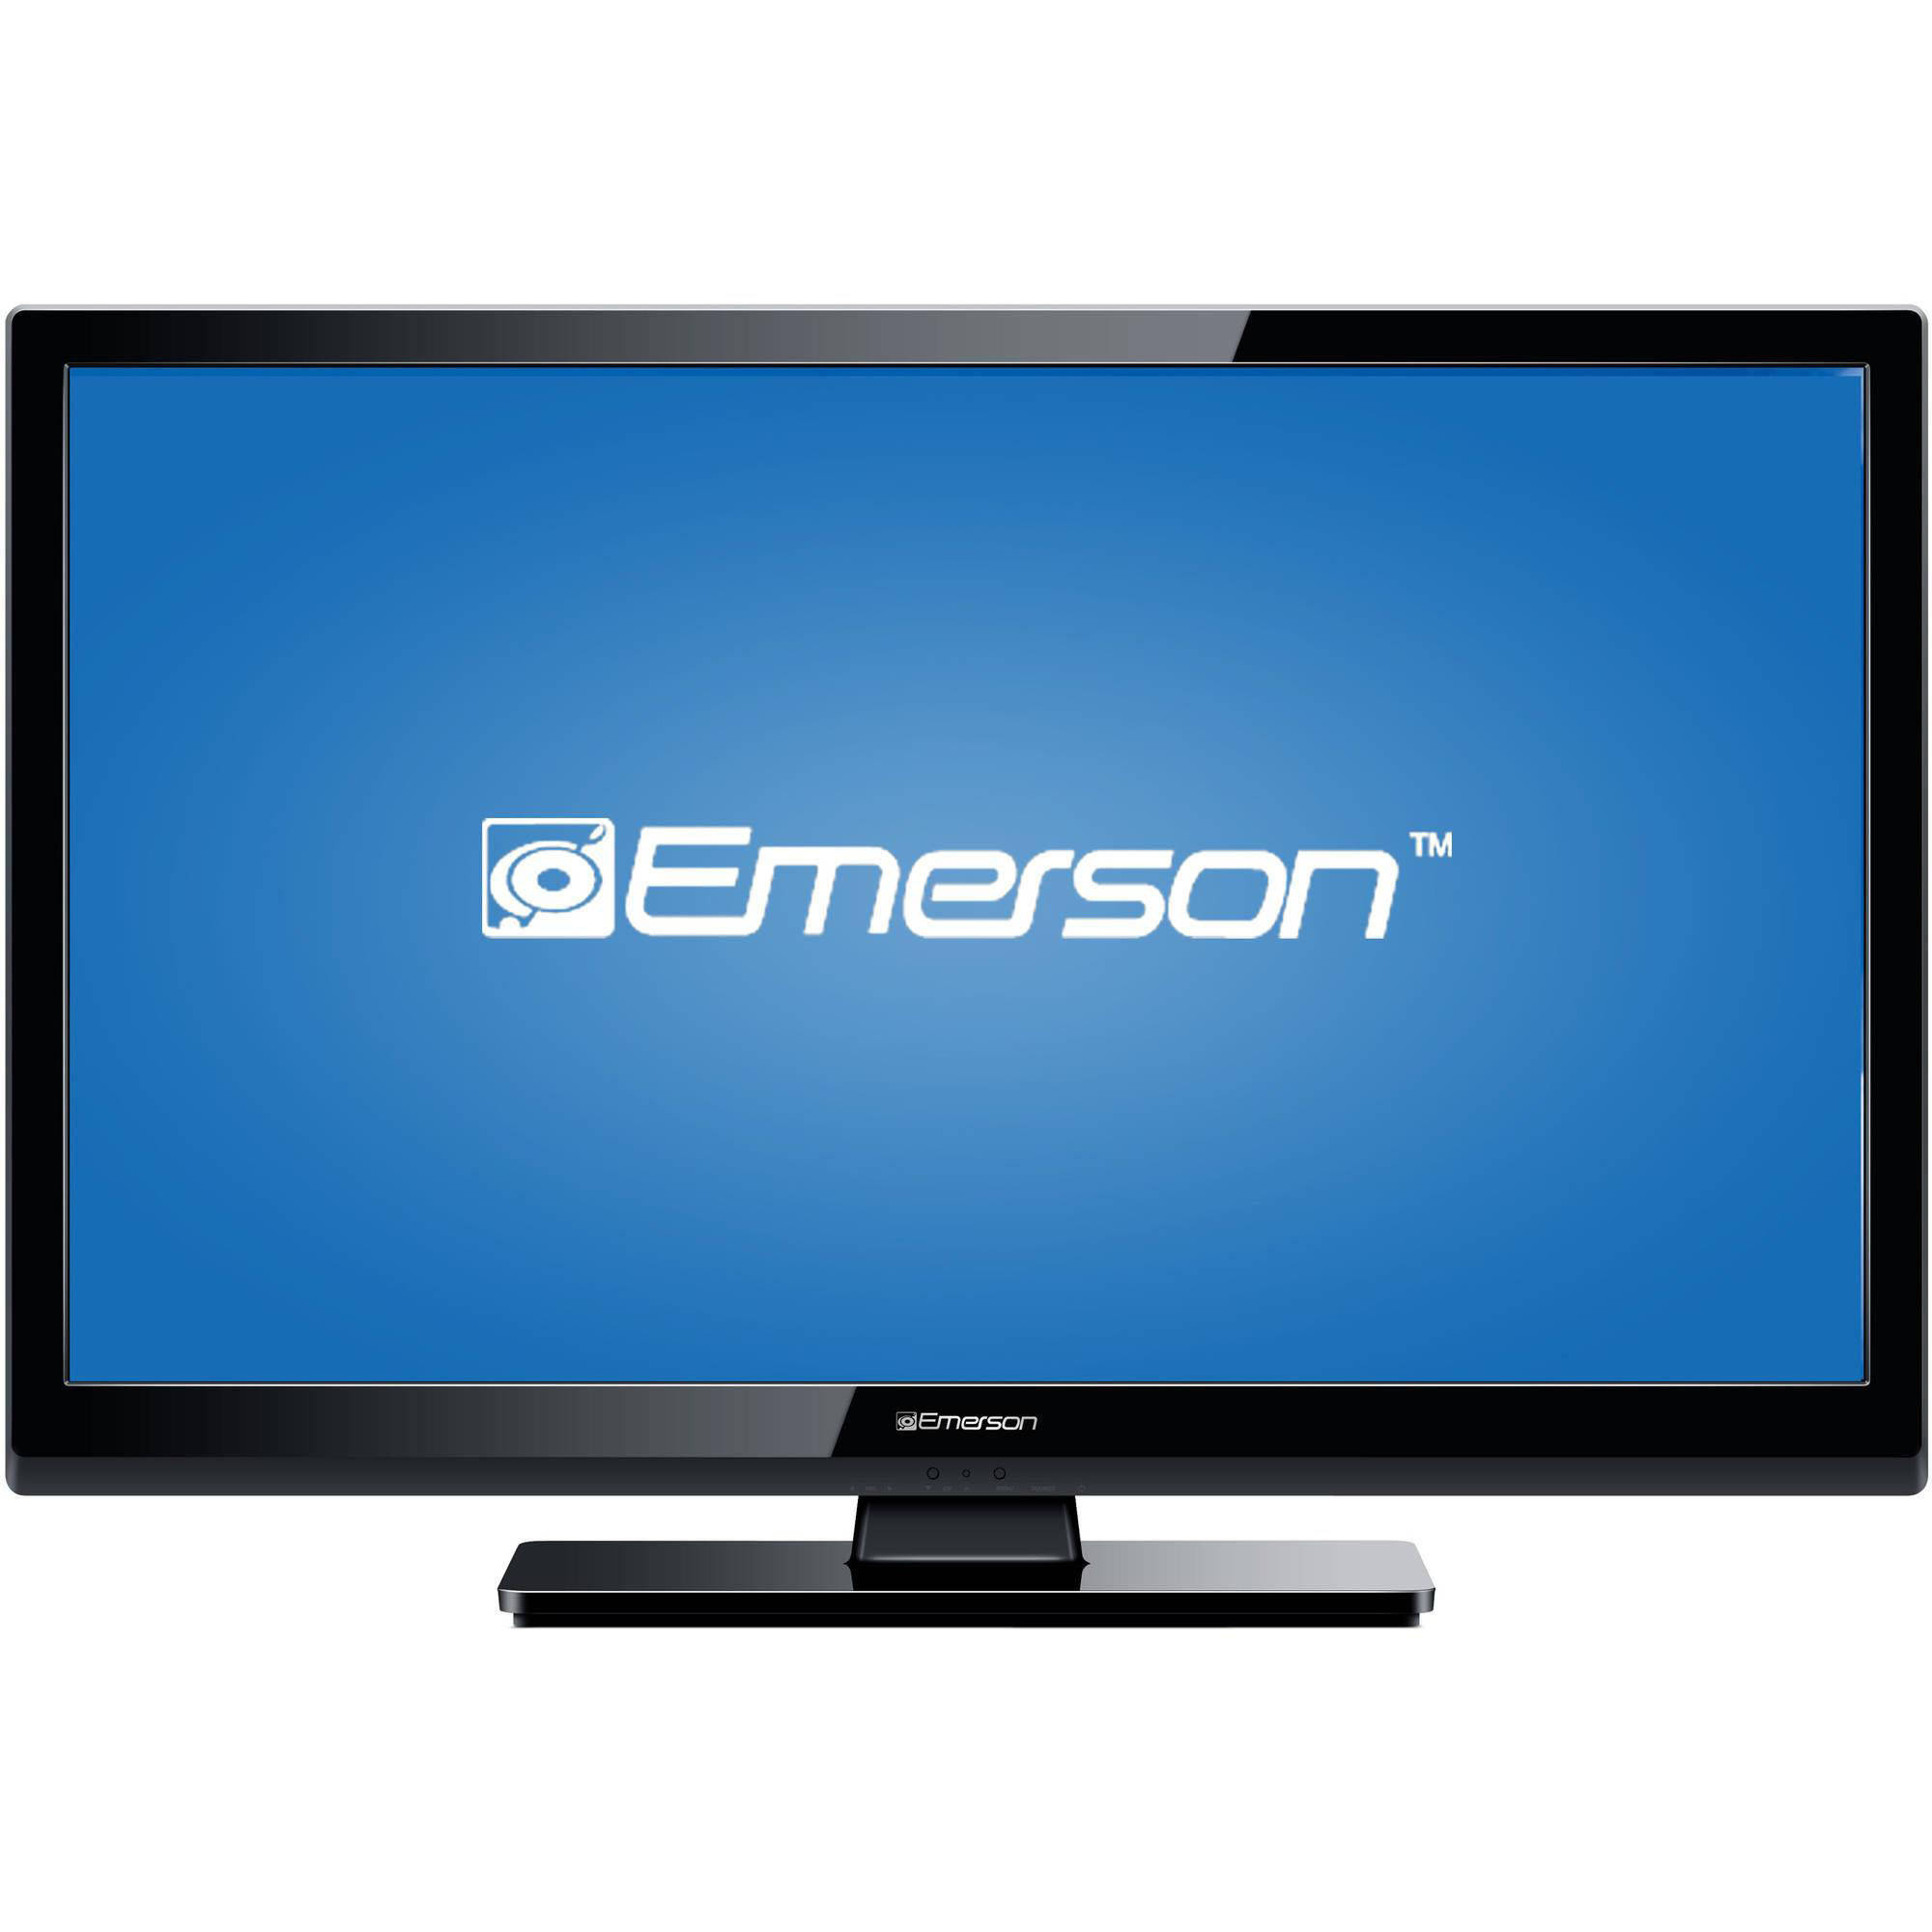 "Refurbished Emerson LF320EM4 32"" 720p 60Hz LCD LED HDTV"